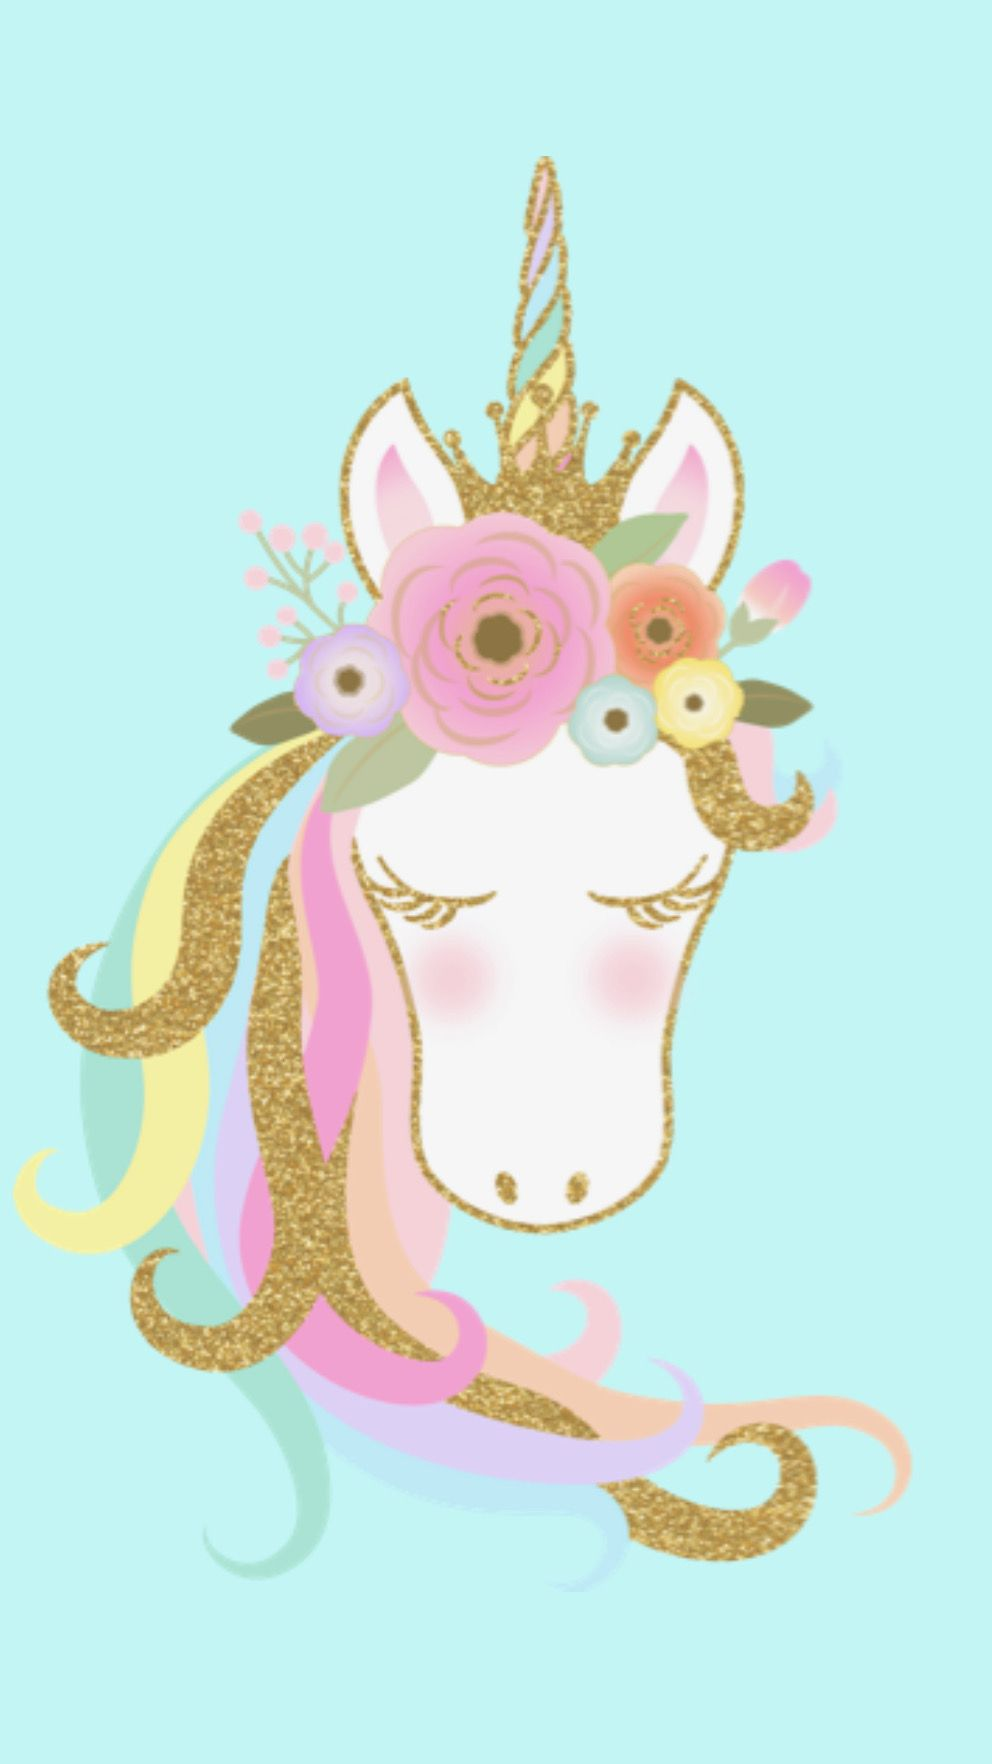 Pin By Kim Teresa On Wallpapers Iphone Unicorn Pictures Unicorn Wallpaper Summer Crafts For Kids